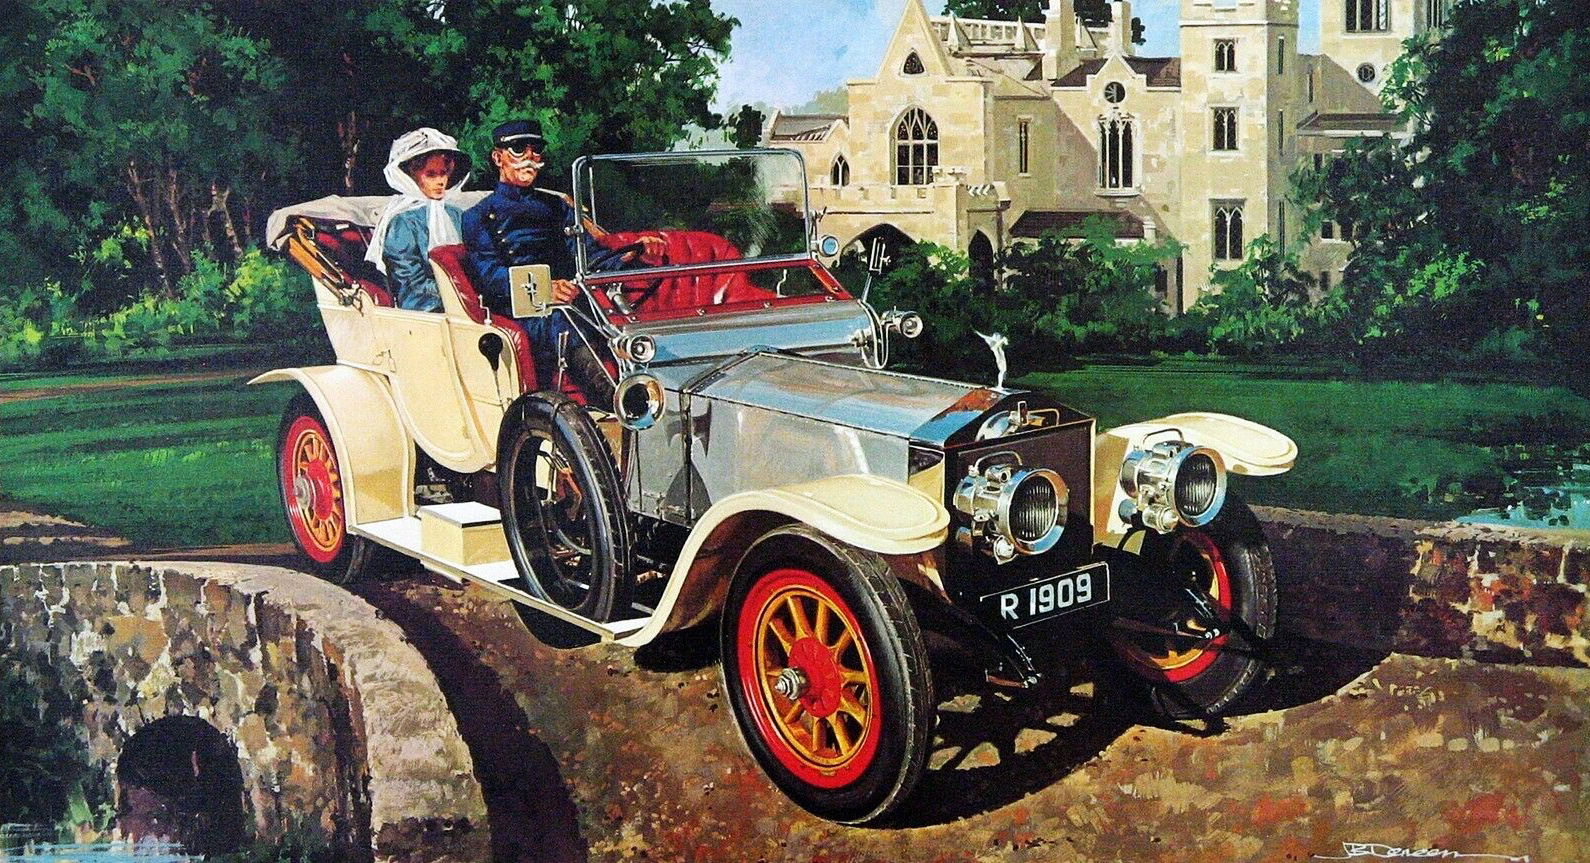 1909. Rolls-Royce Silver Ghost. Illustrated by James B. Deneen